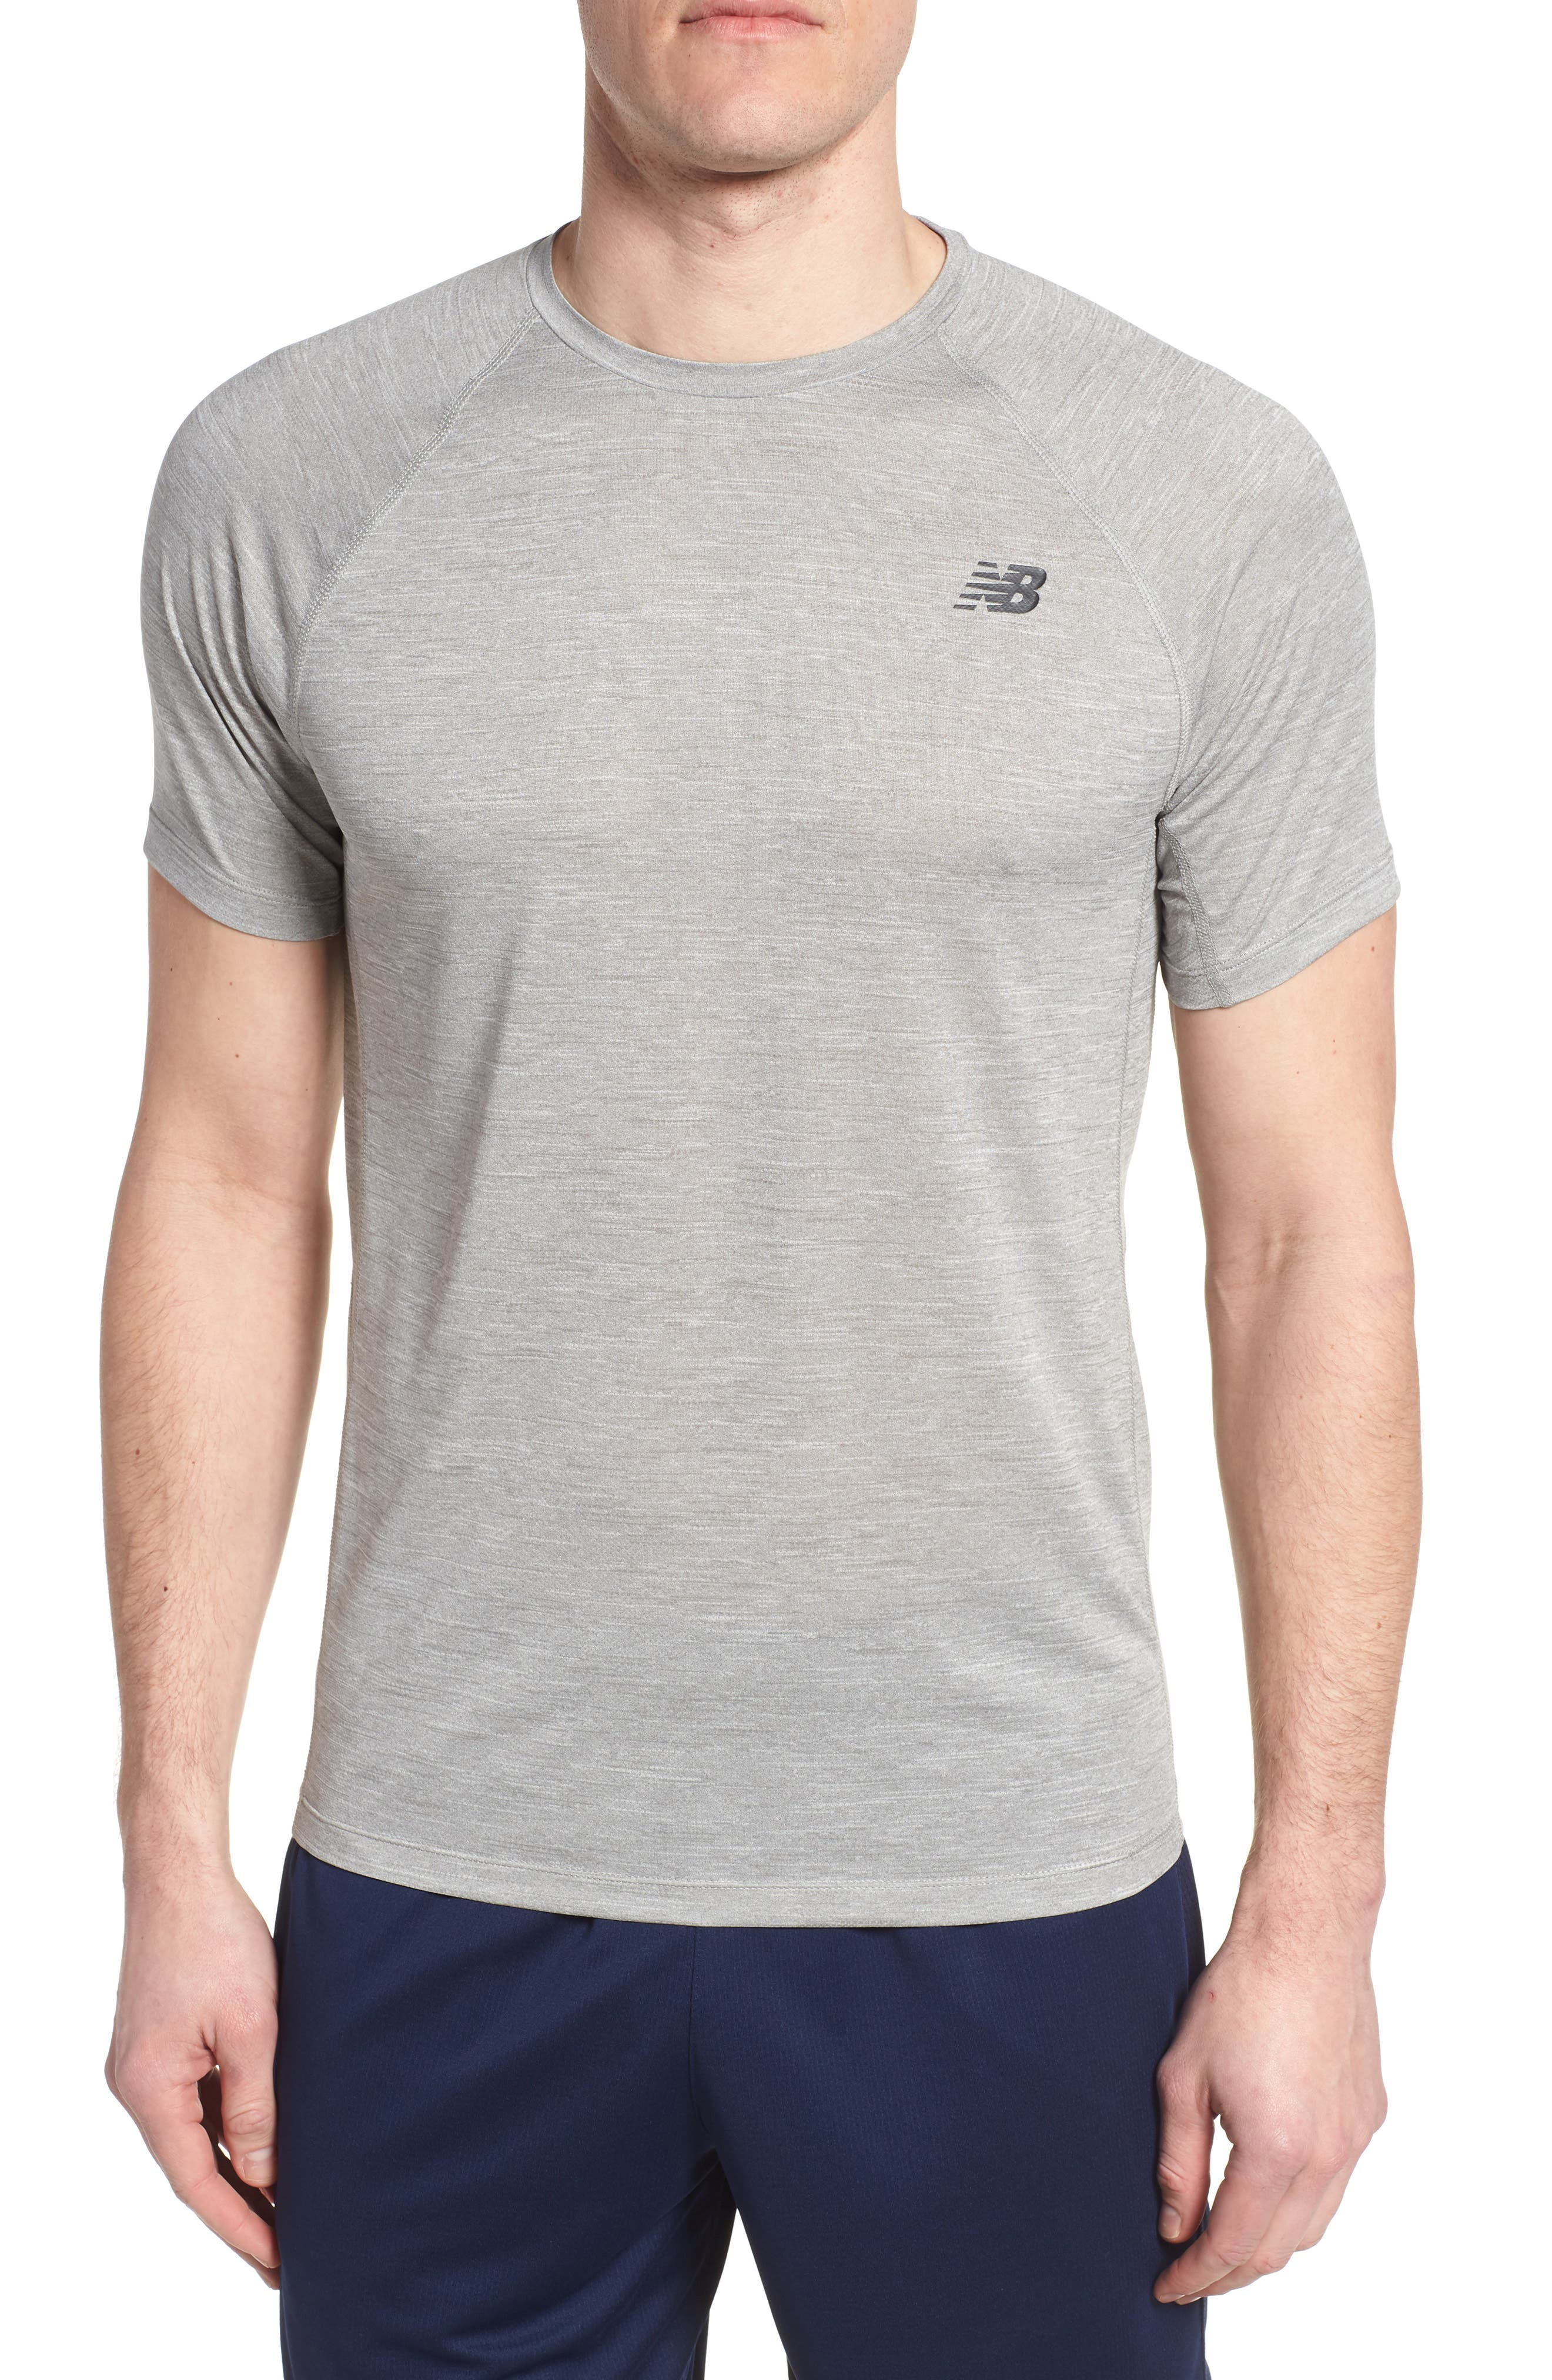 Tenacity Crewneck T-Shirt,                             Main thumbnail 1, color,                             ATHLETIC GREY